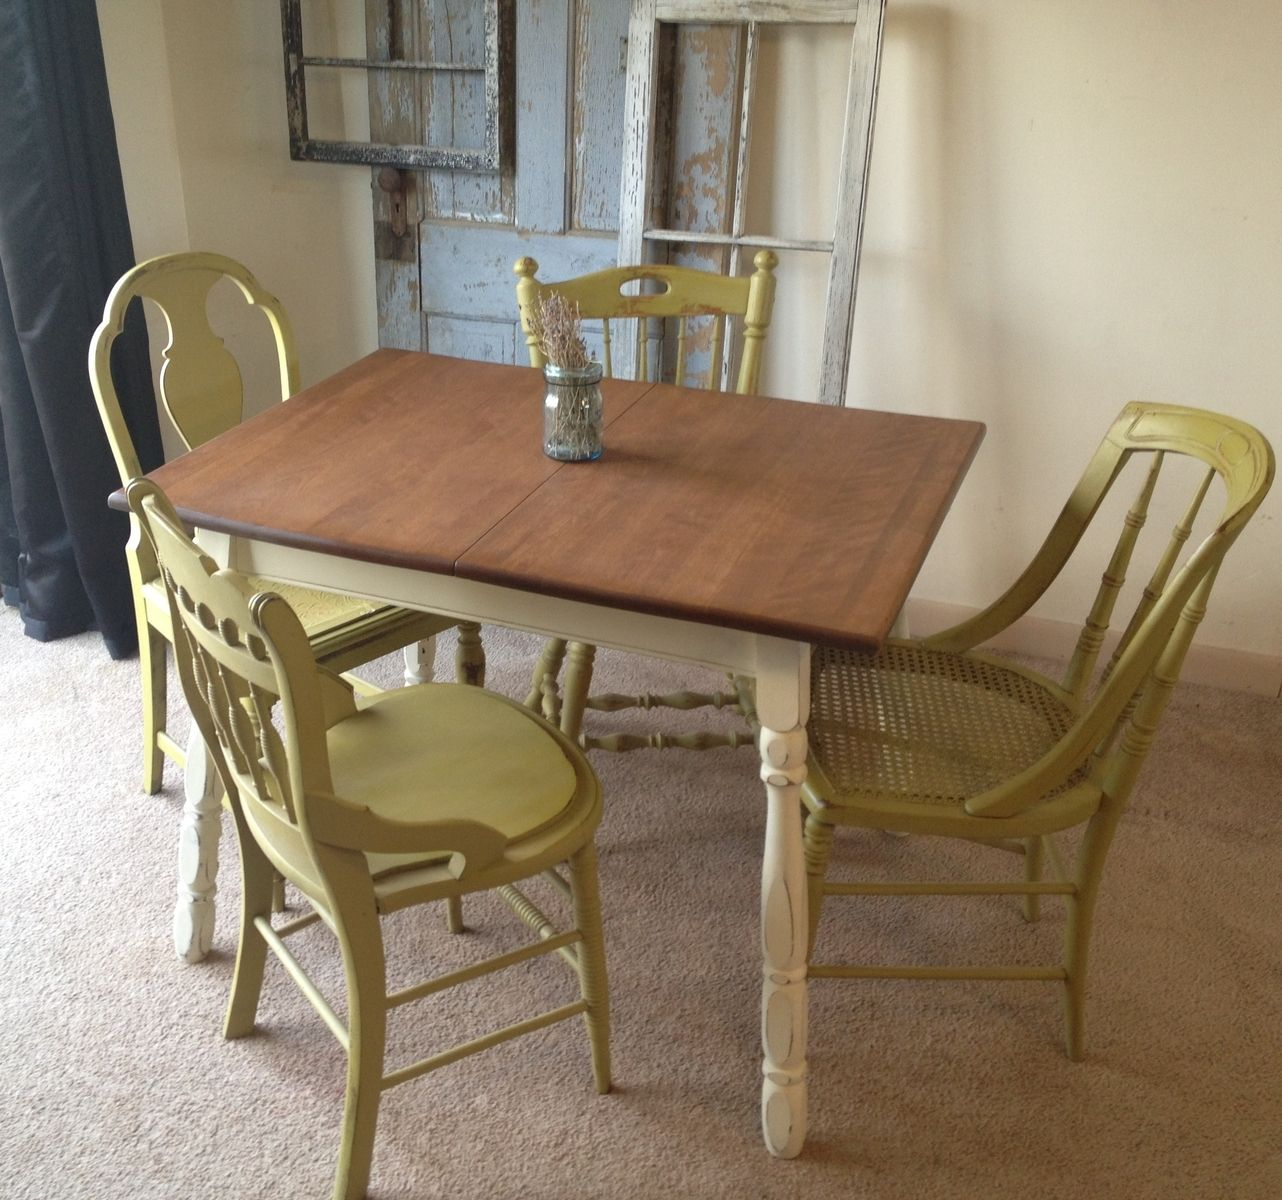 Apartment Kitchen Table And Chairs: Hand Crafted Vintage Small Kitchen Table With Four Miss